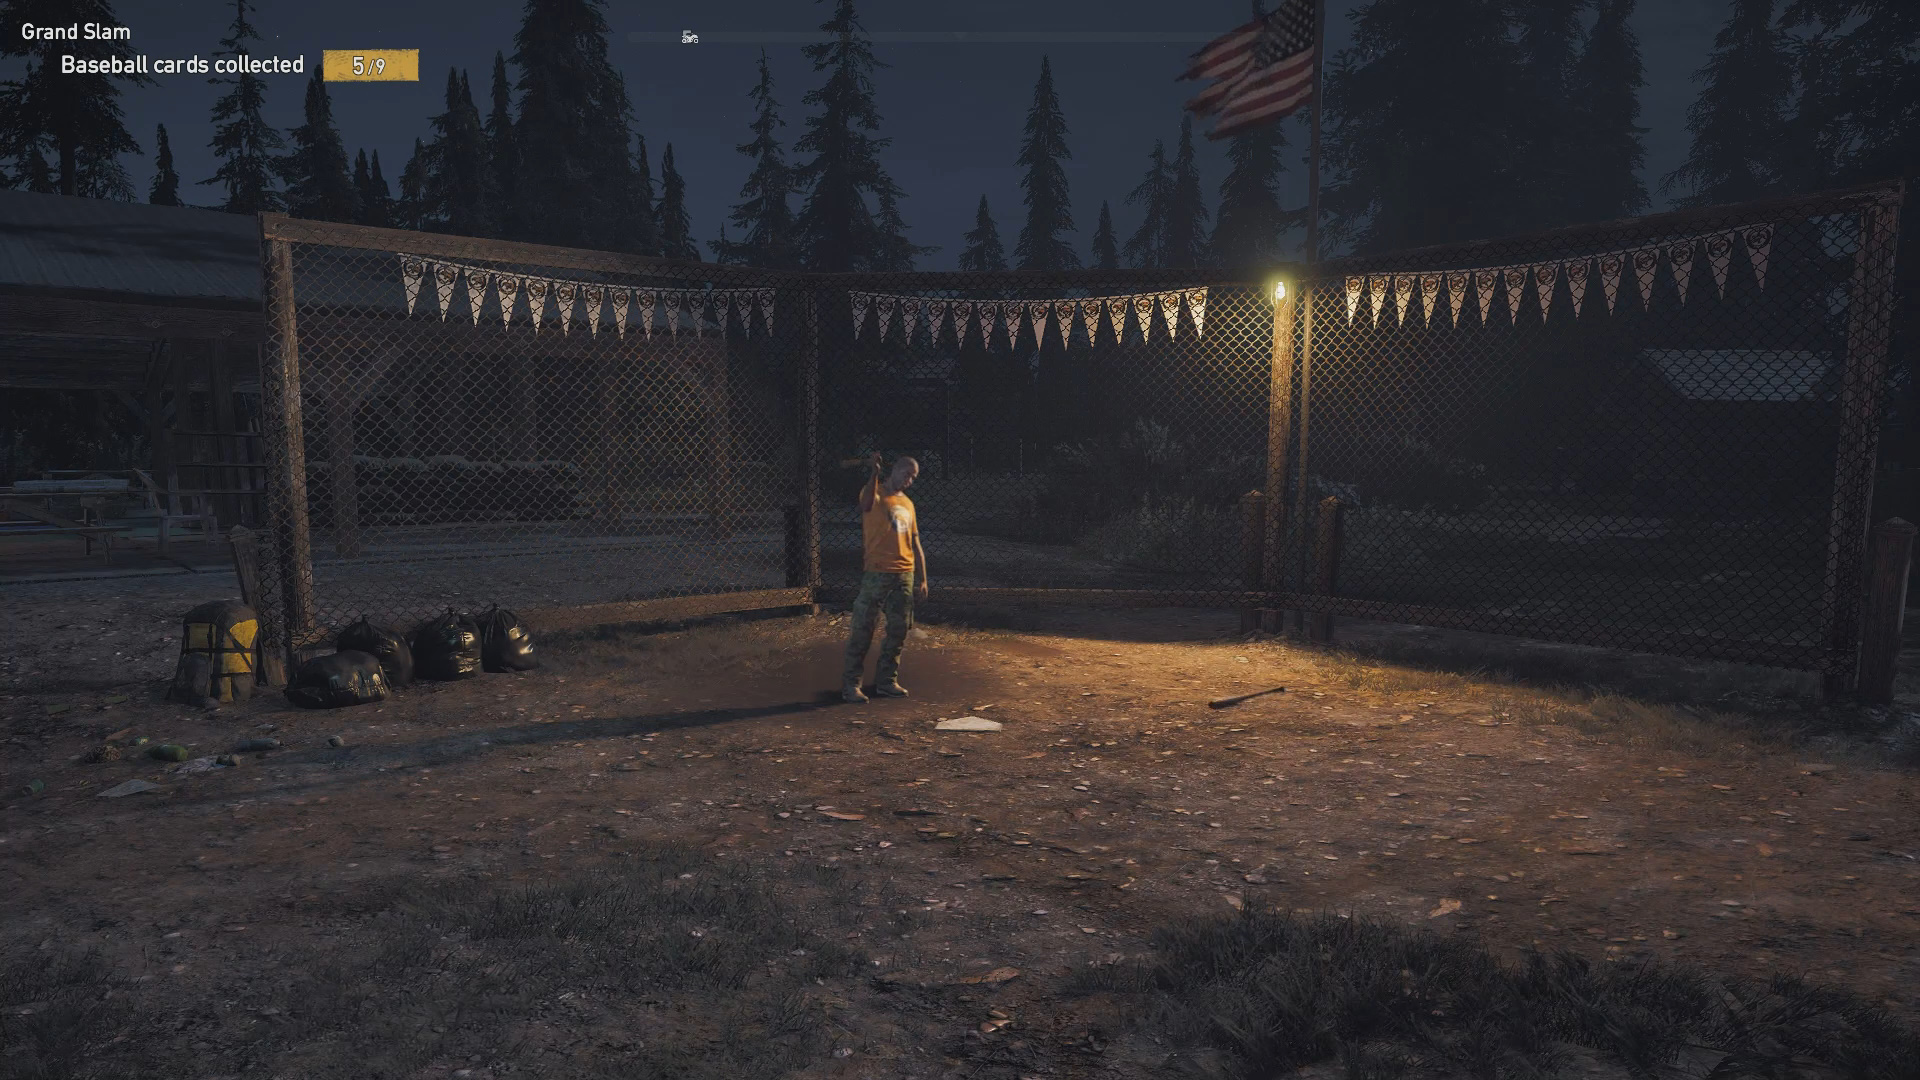 Grand Slam Guide Find All Baseball Cards For George Far Cry 5